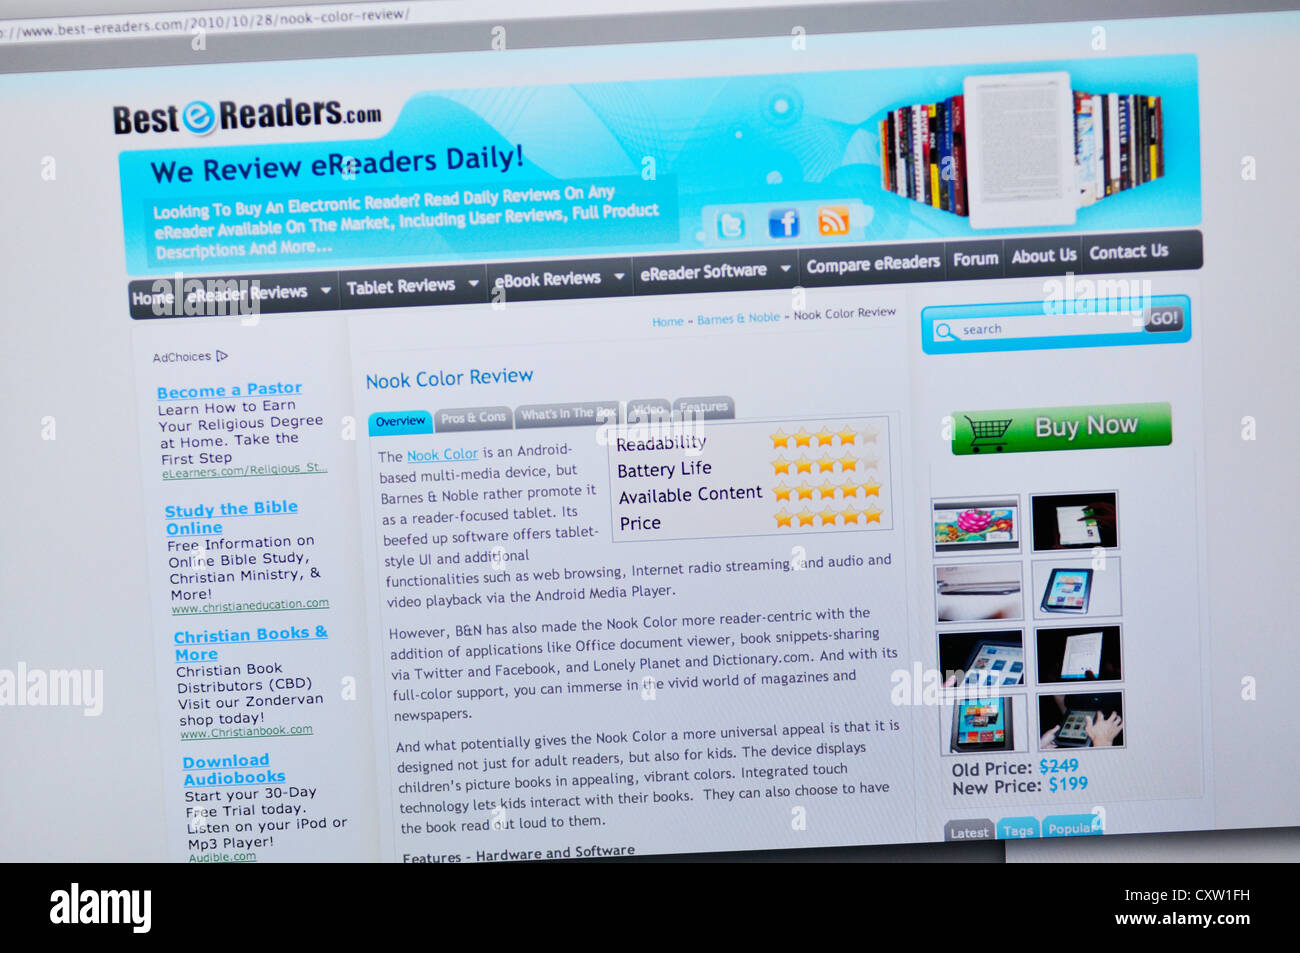 best ereaders website ereader reviews stock image